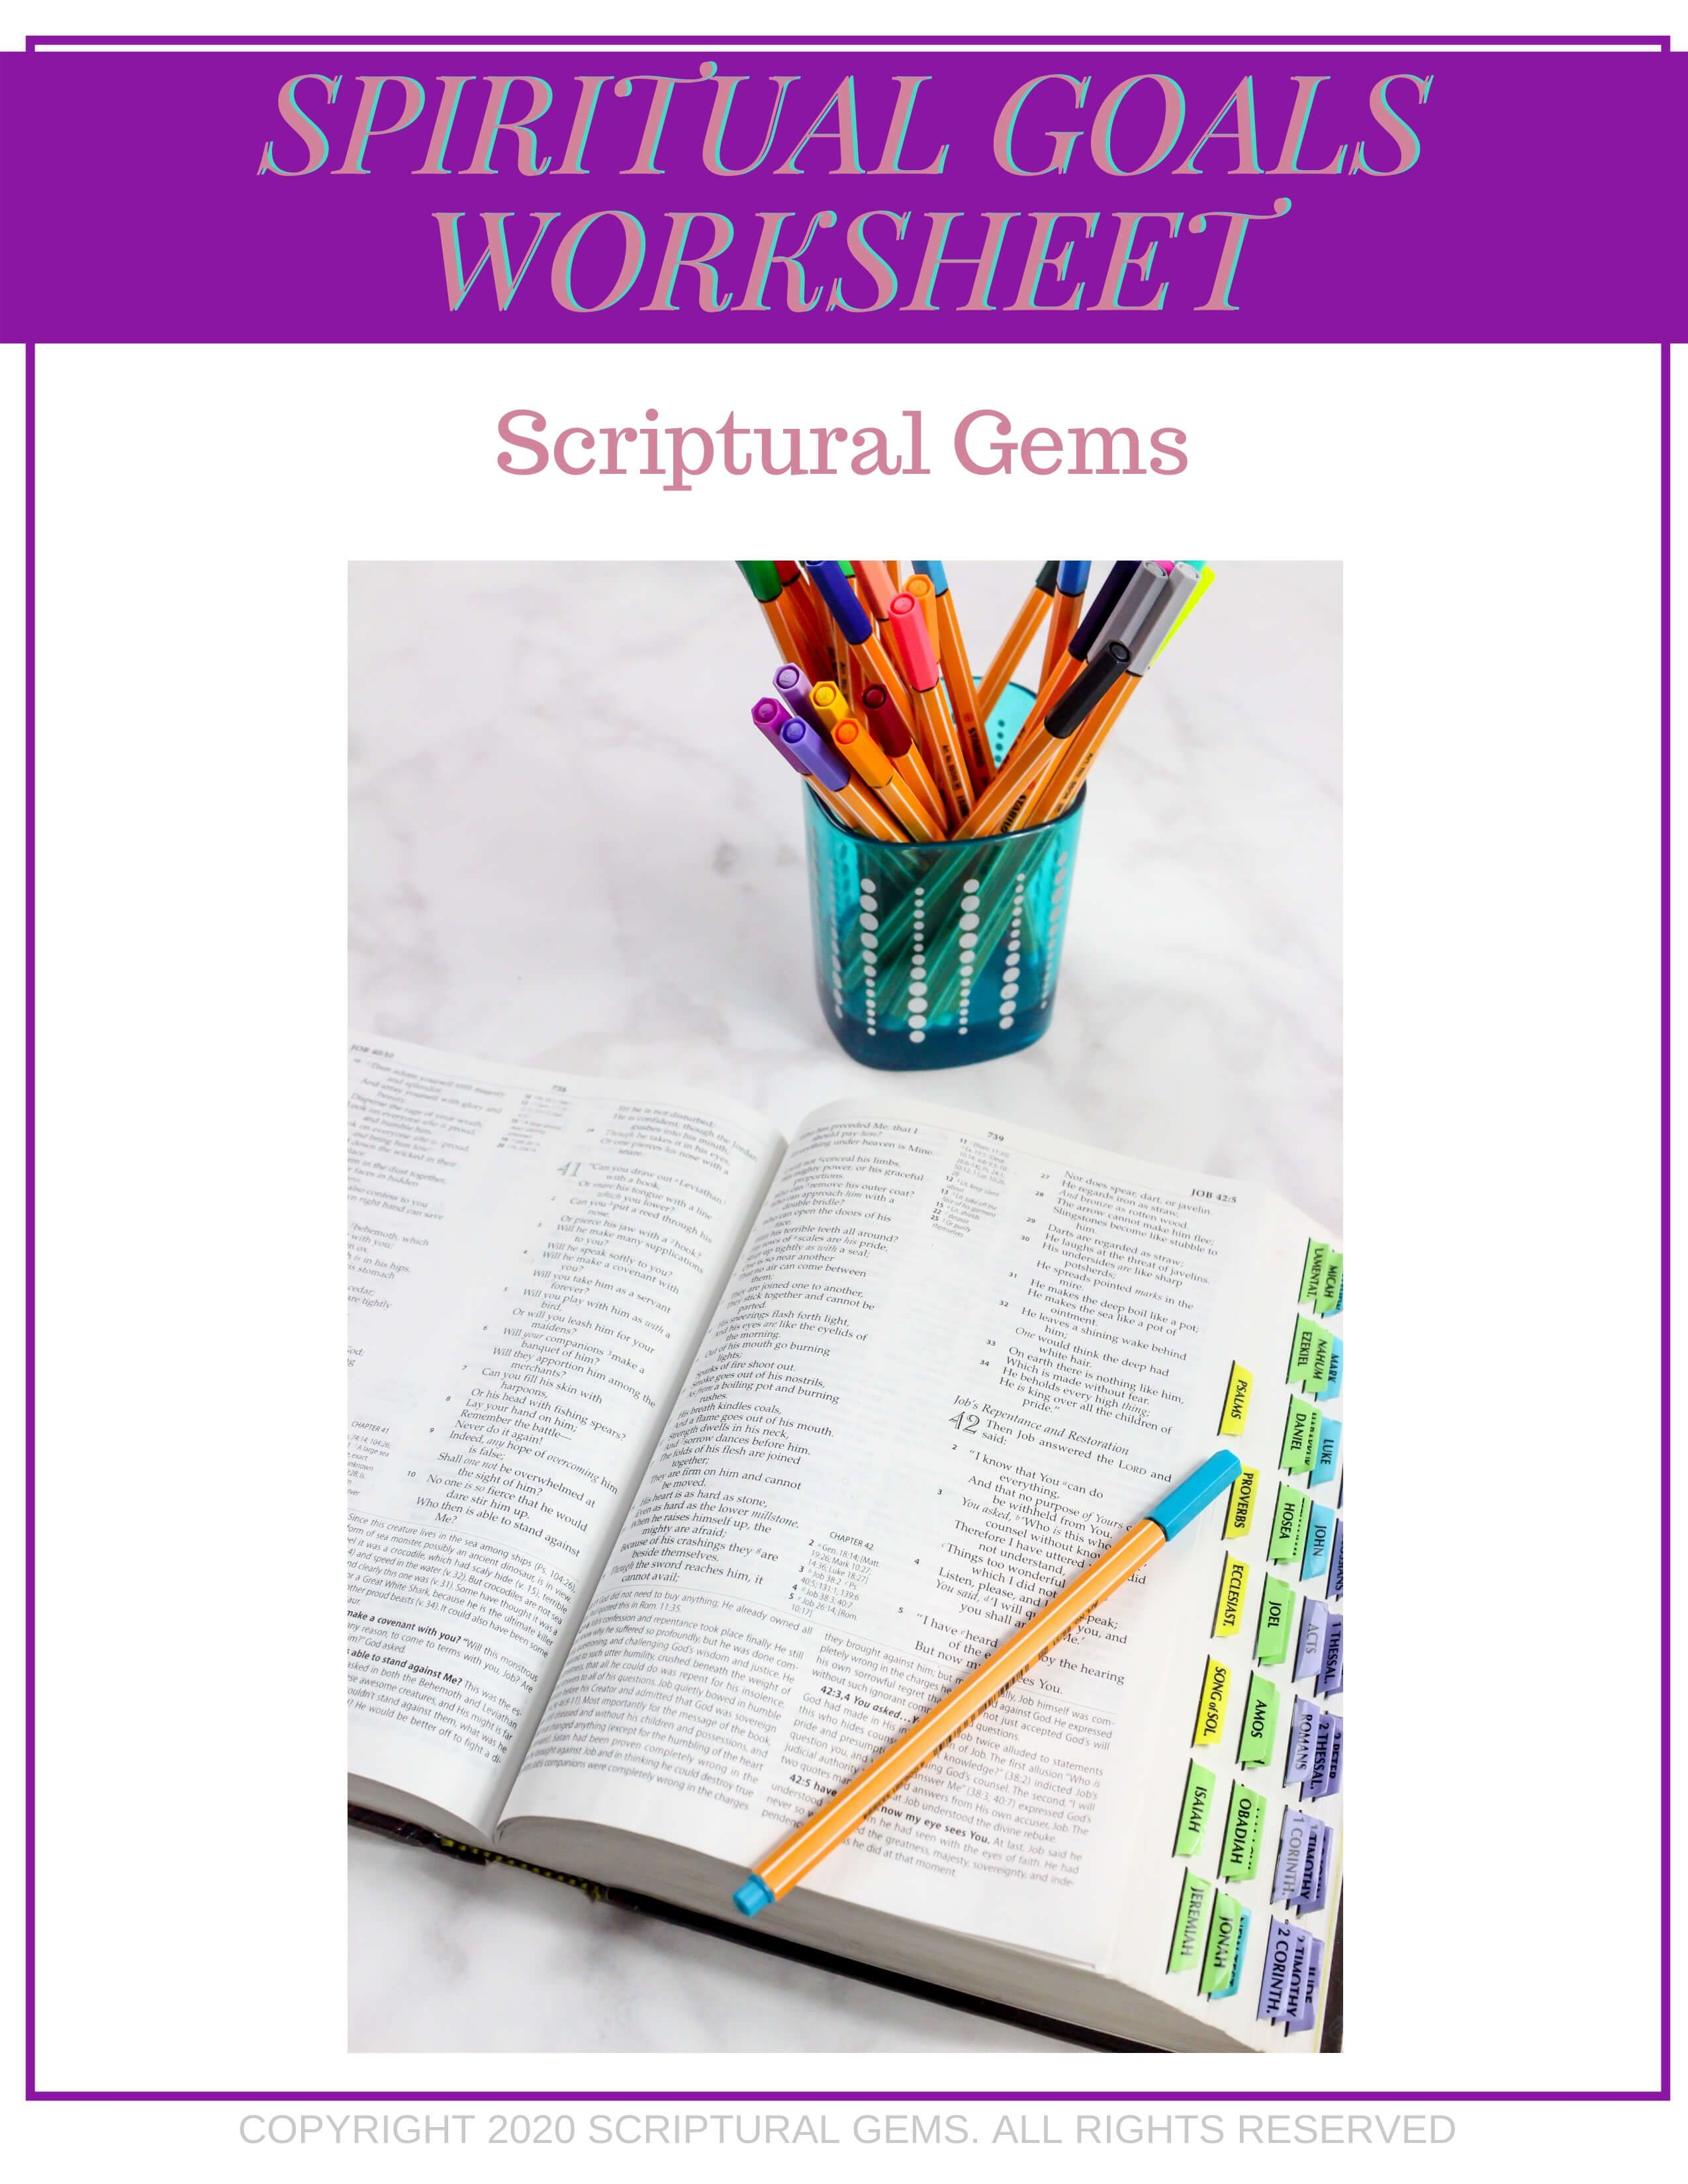 Setting Spiritual Goals Worksheet In With Images